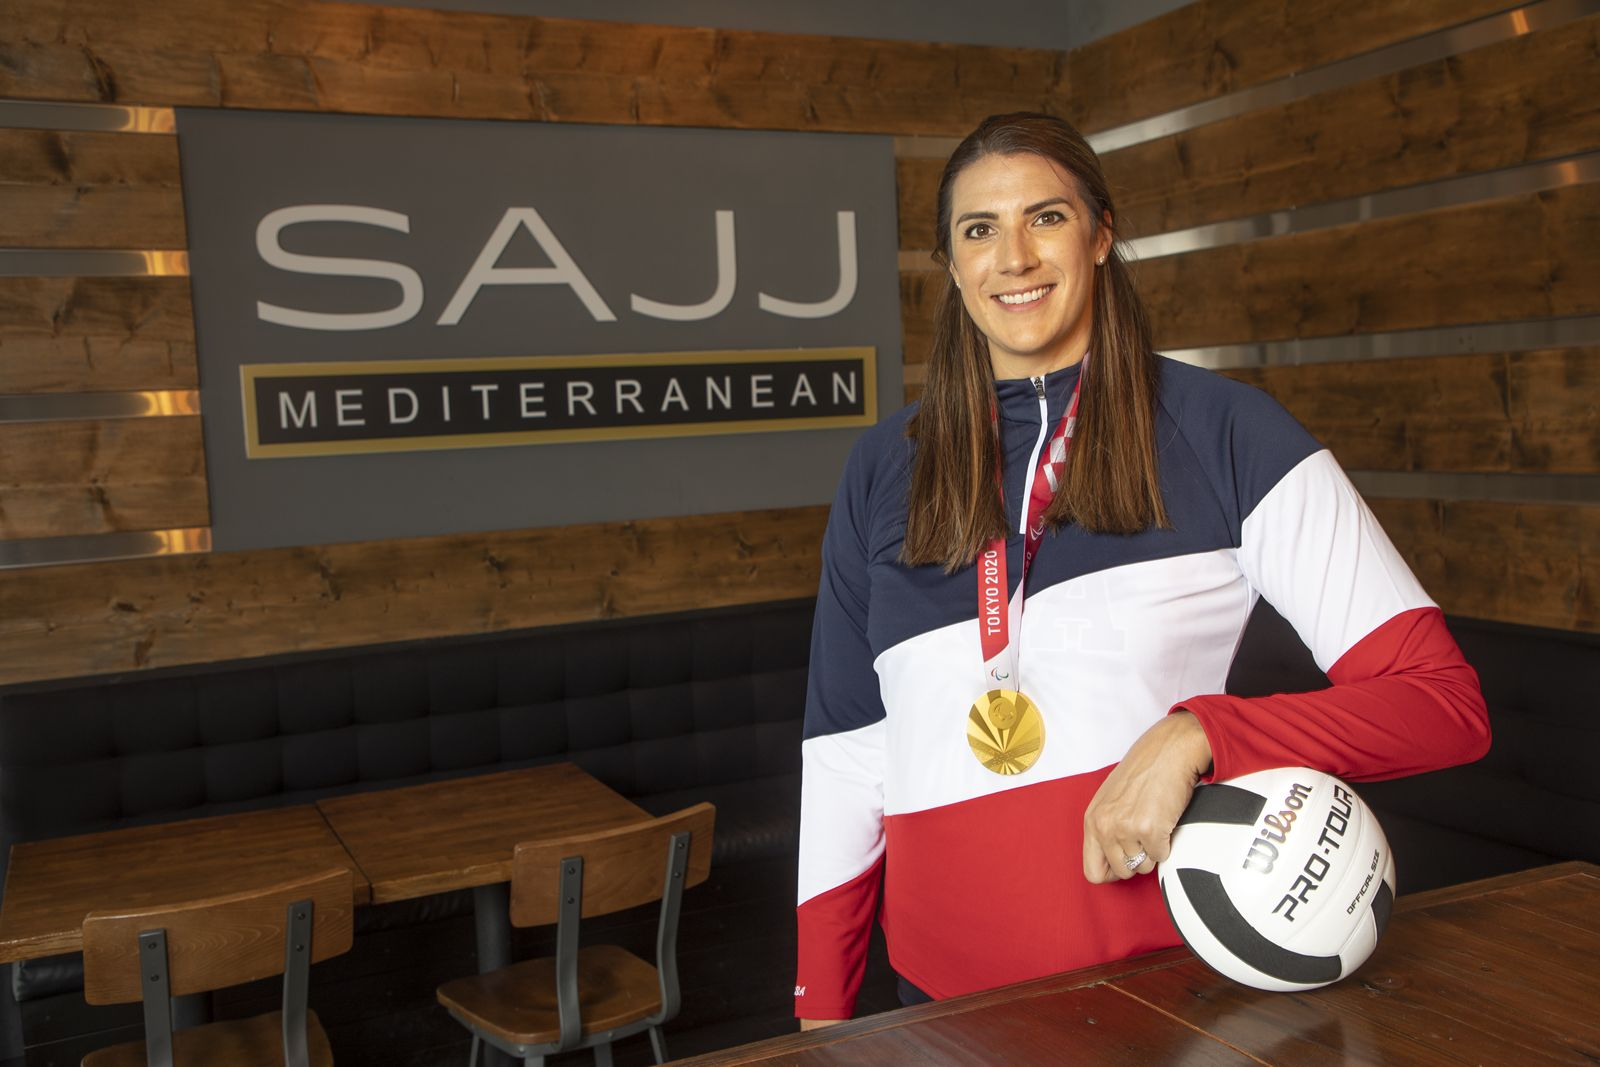 SAJJ Mediterranean has announced its newest partnership with Katie Holloway, Tokyo 2020 Paralympic Gold Medalist, to bring support to the Riekes Center in Menlo Park, CA.